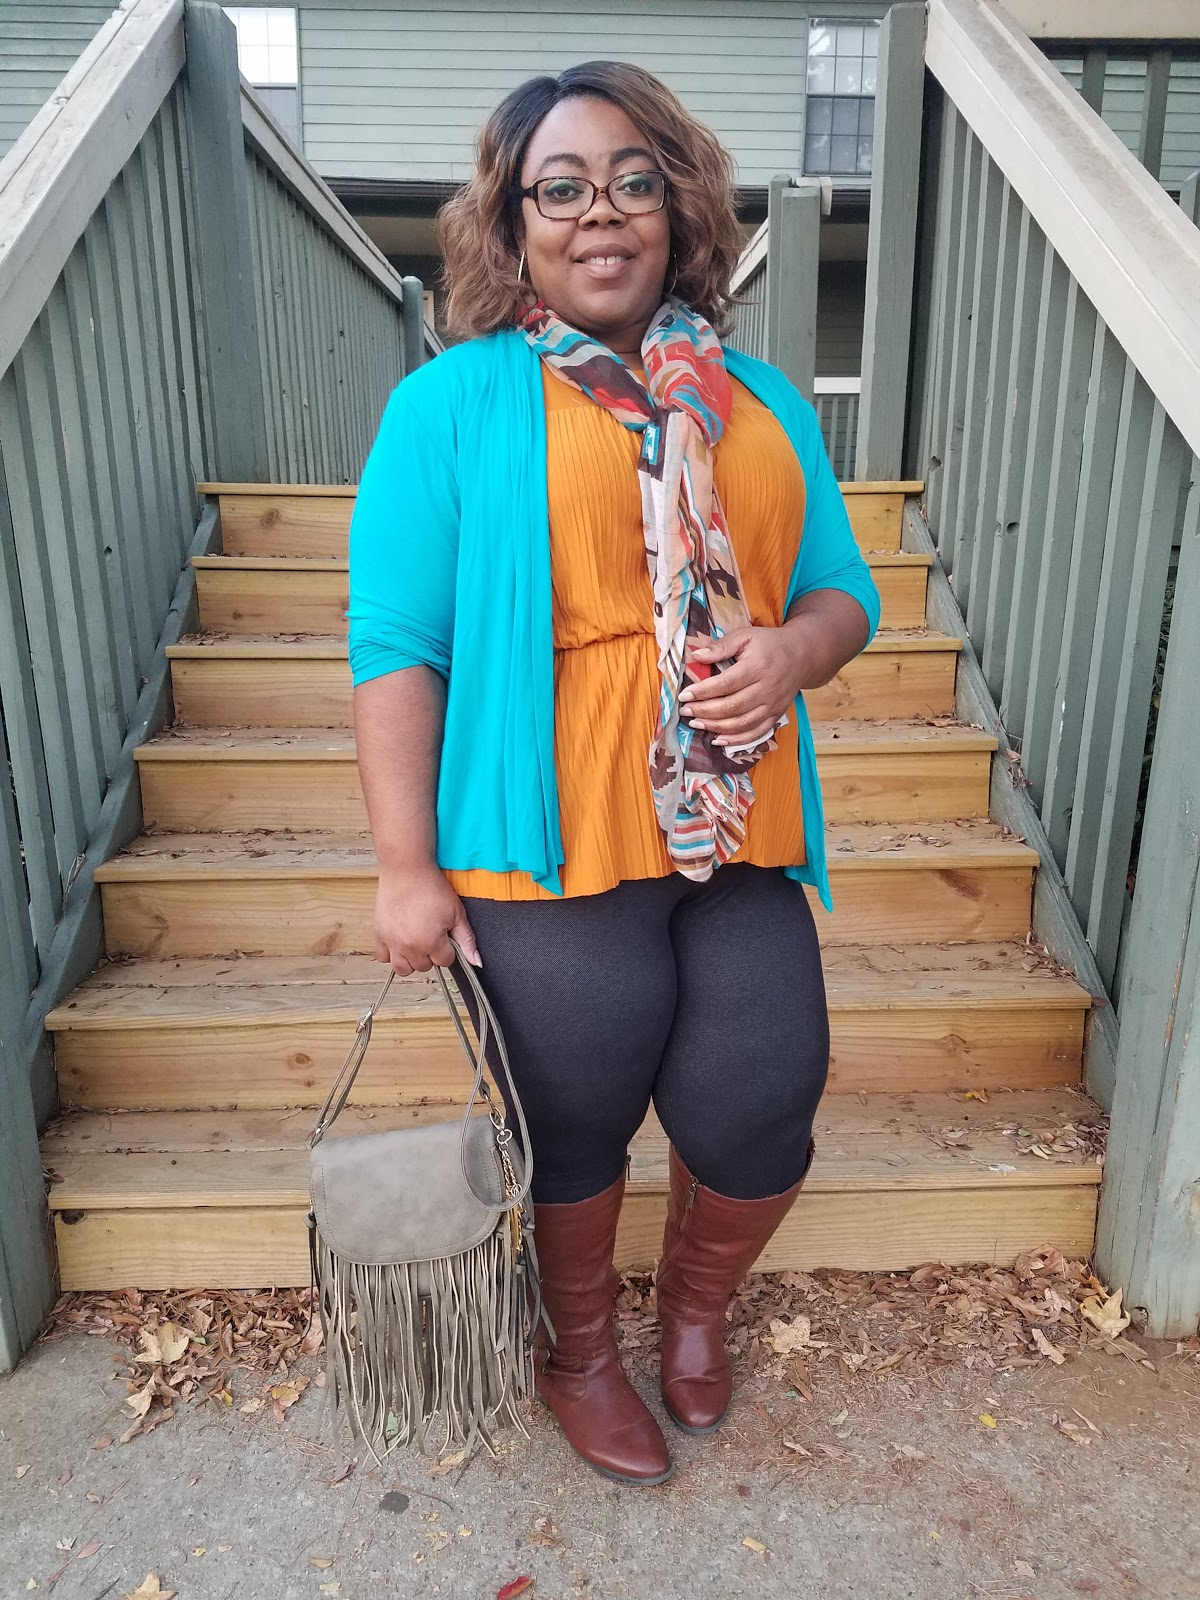 pleats, peplum hem, mustard blouse, teal cardigan, fringe bag, scarf accessory, cognac boots, thick thighs, round hips